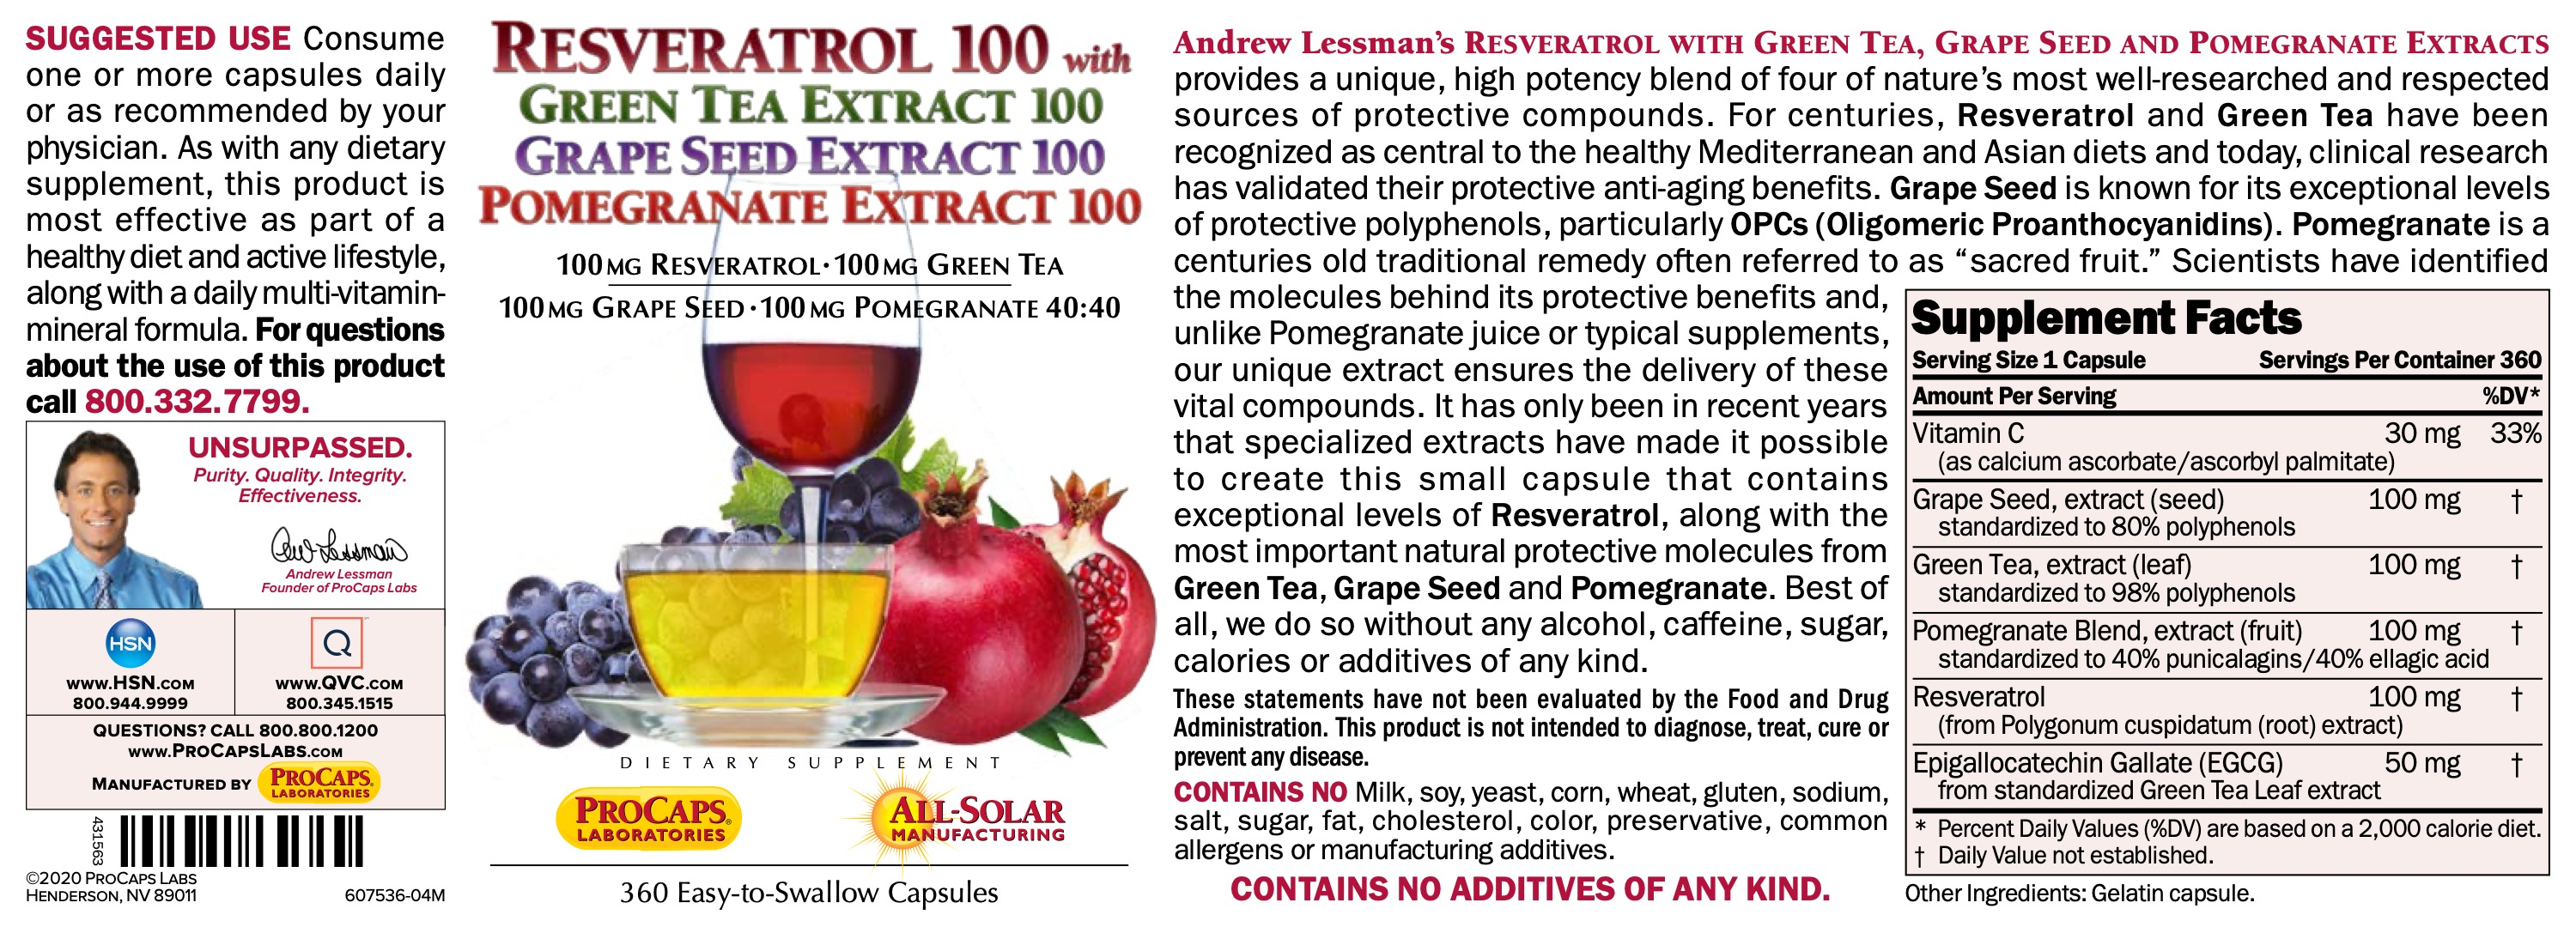 Resveratrol-100-with-Green-Tea-100-Grape-Seed-100-Pomegranate-100-Capsules-Anti-oxidants